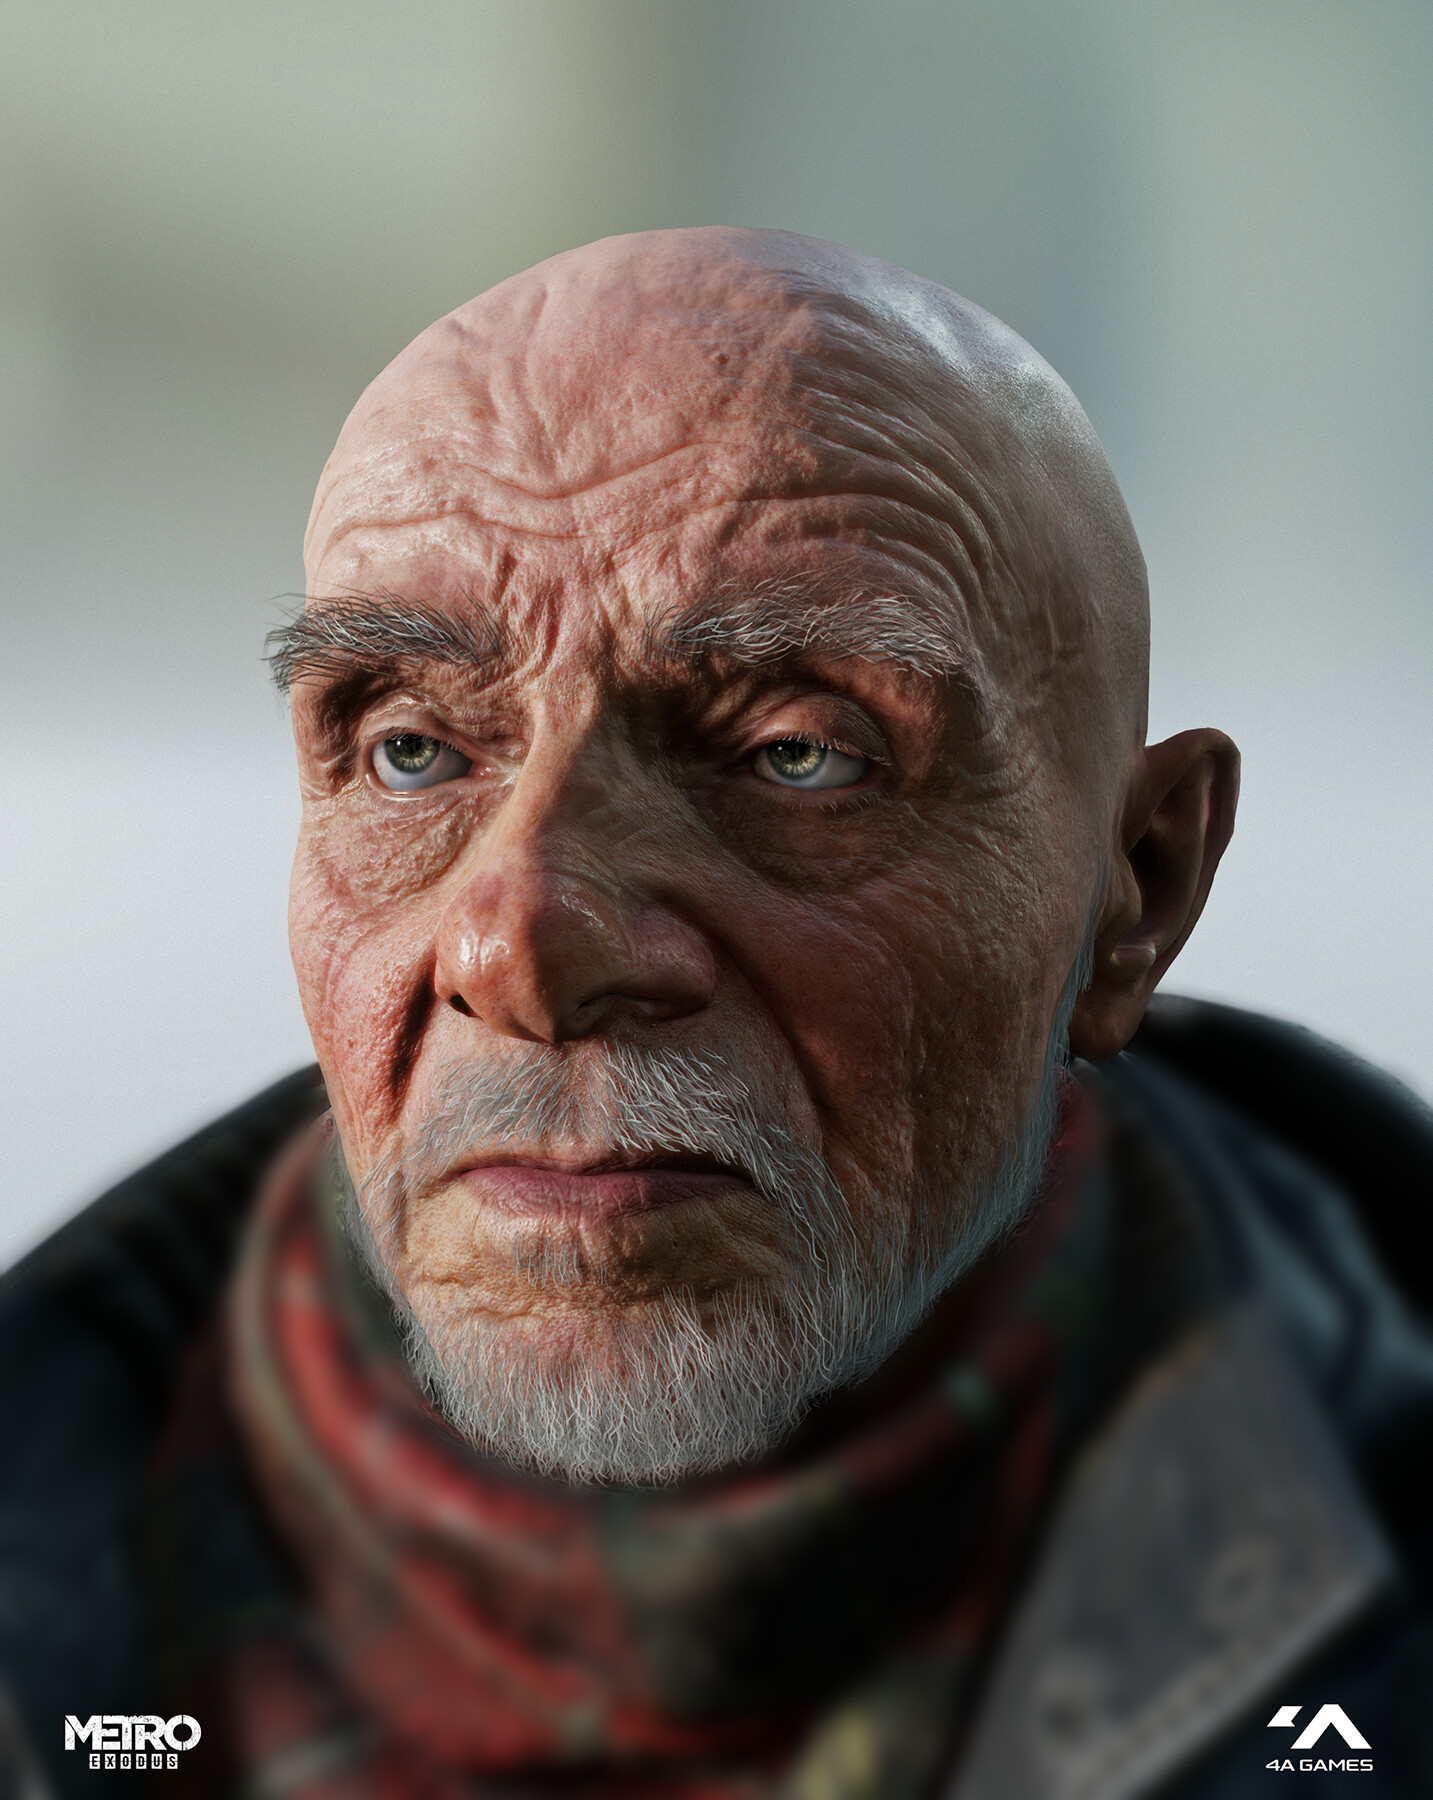 Game model rendered in 4a Engine. Beard and clothing done by another artists